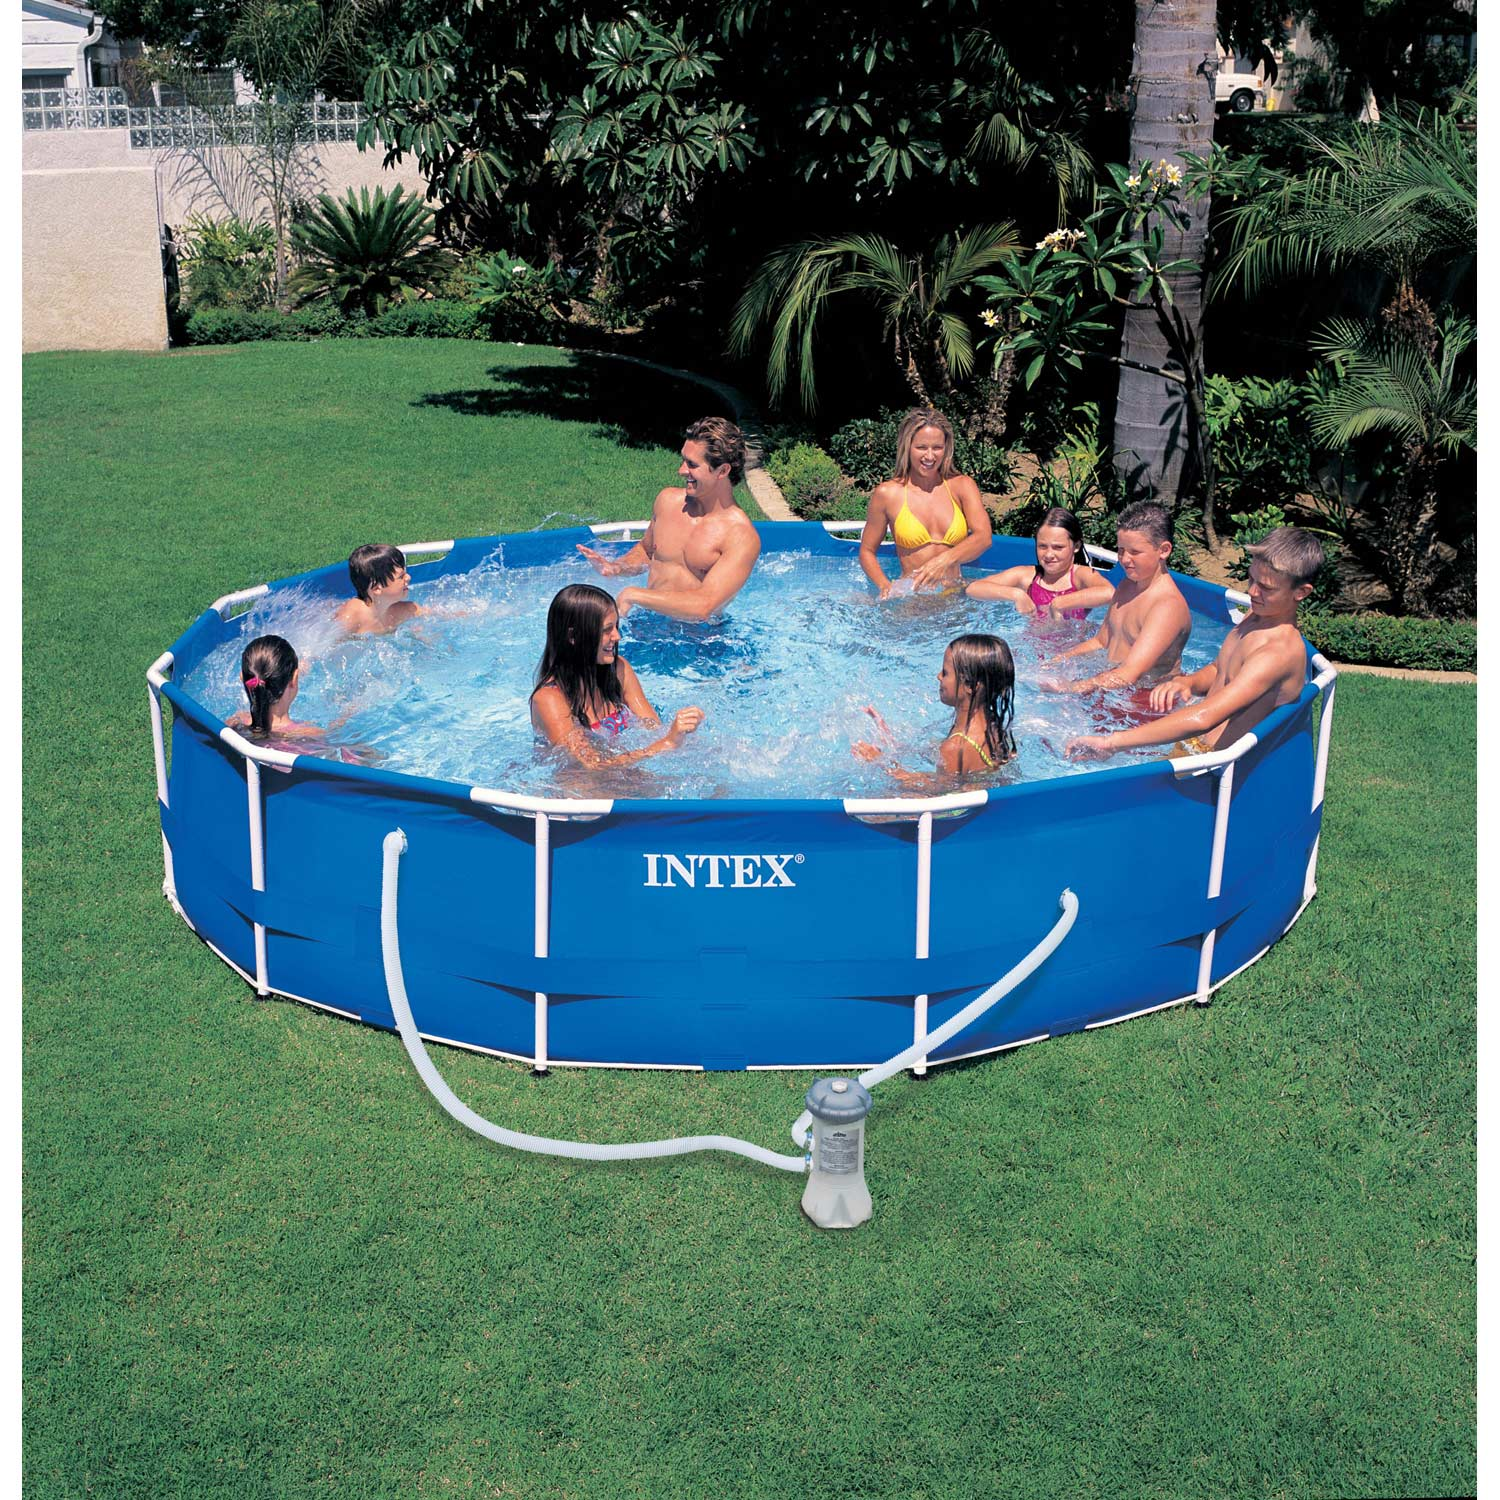 Piscine hors sol autoportante tubulaire m tal frame intex for Piscine intex tubulaire en solde